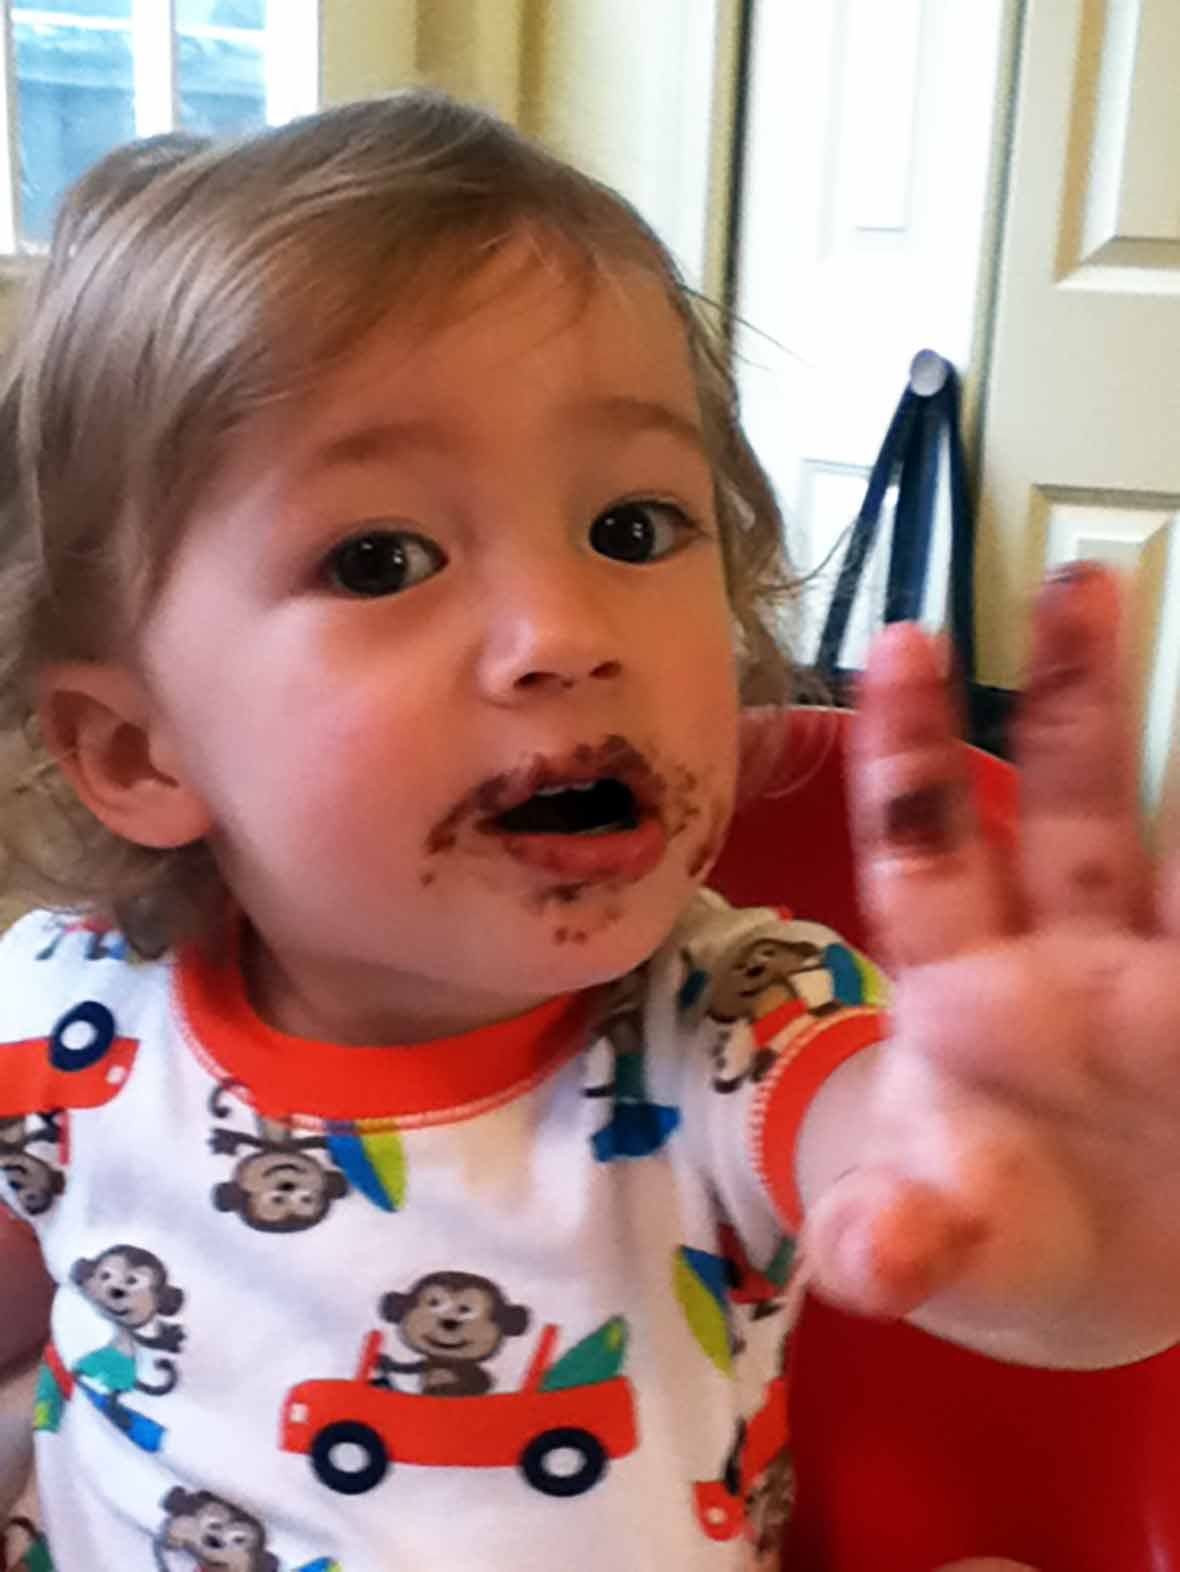 An toddler proudly showing his face smeared with Nutella